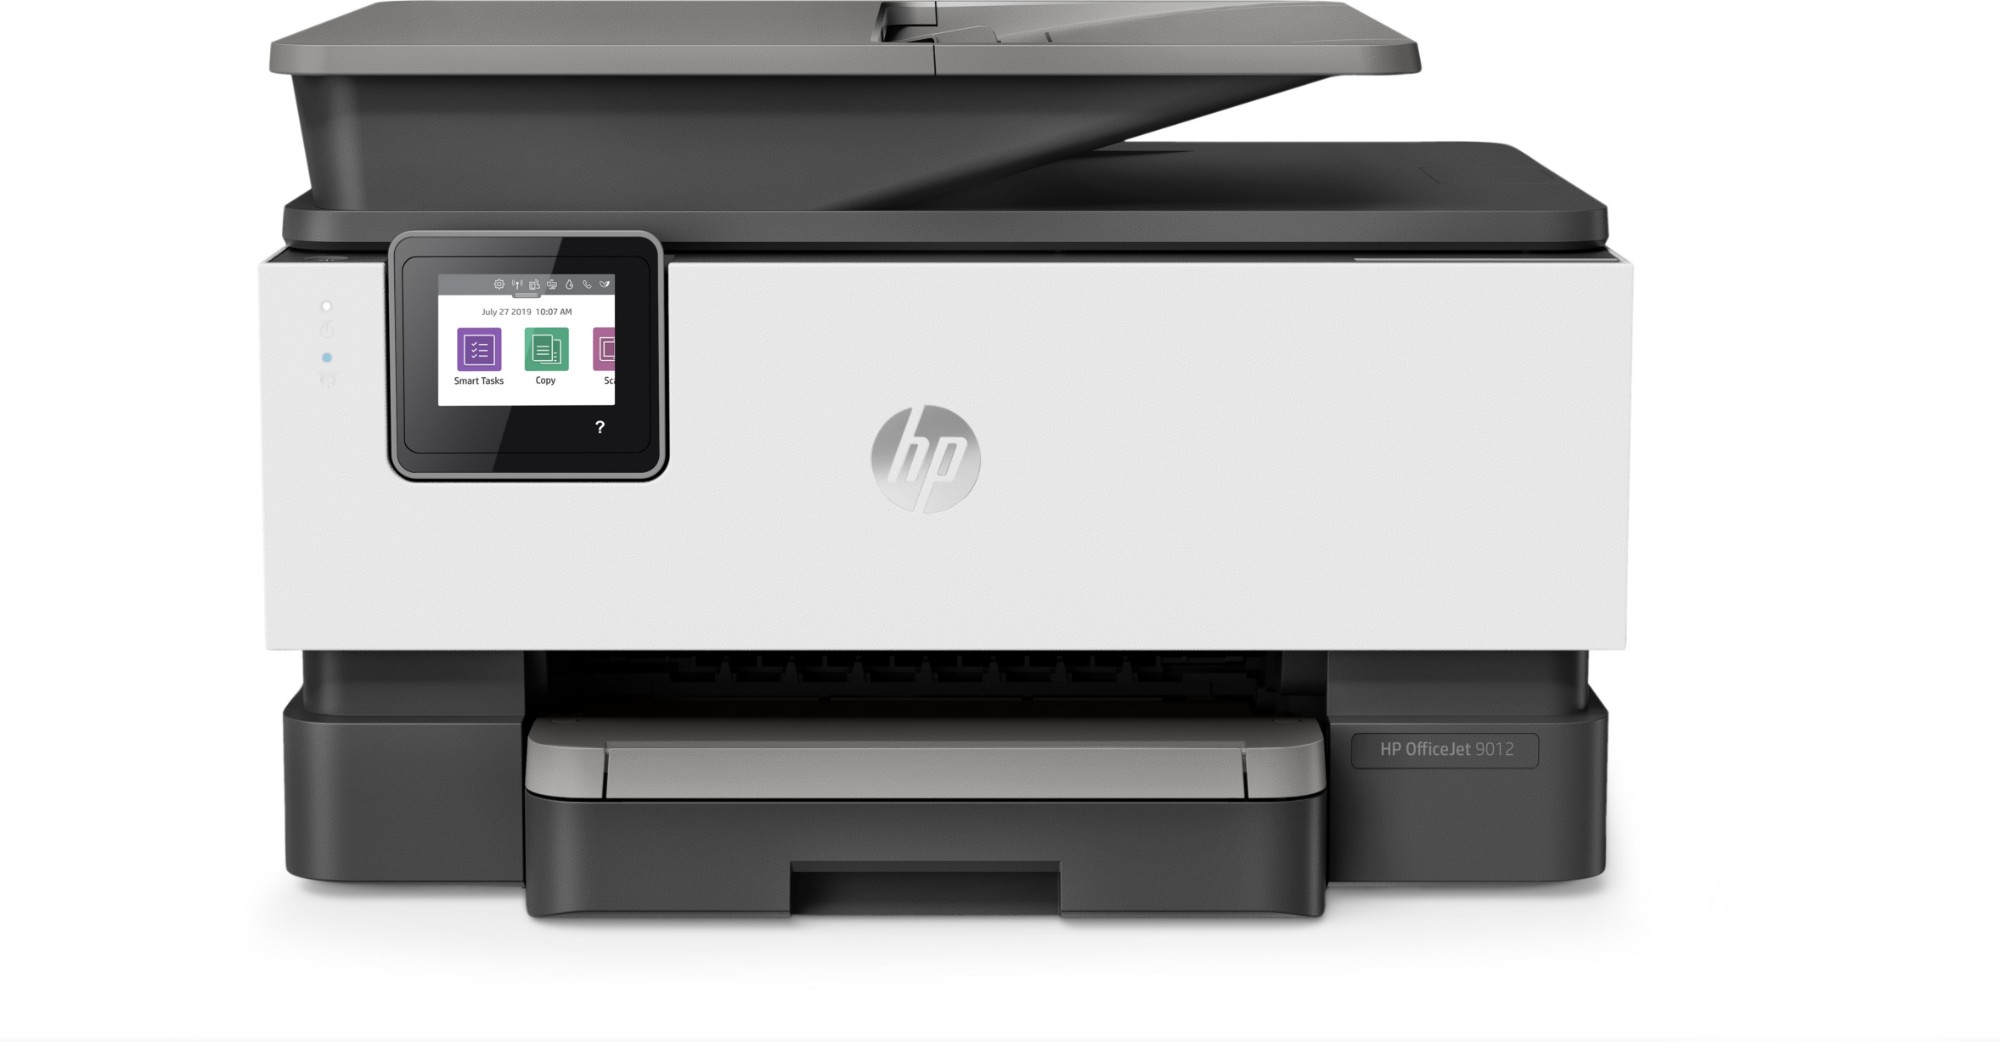 HP OfficeJet Pro 9012 All-in-one wireless printer Print,Scan,Copy from your phone, Instant Ink ready & voice activated (works with Alexa and Google Assistant)